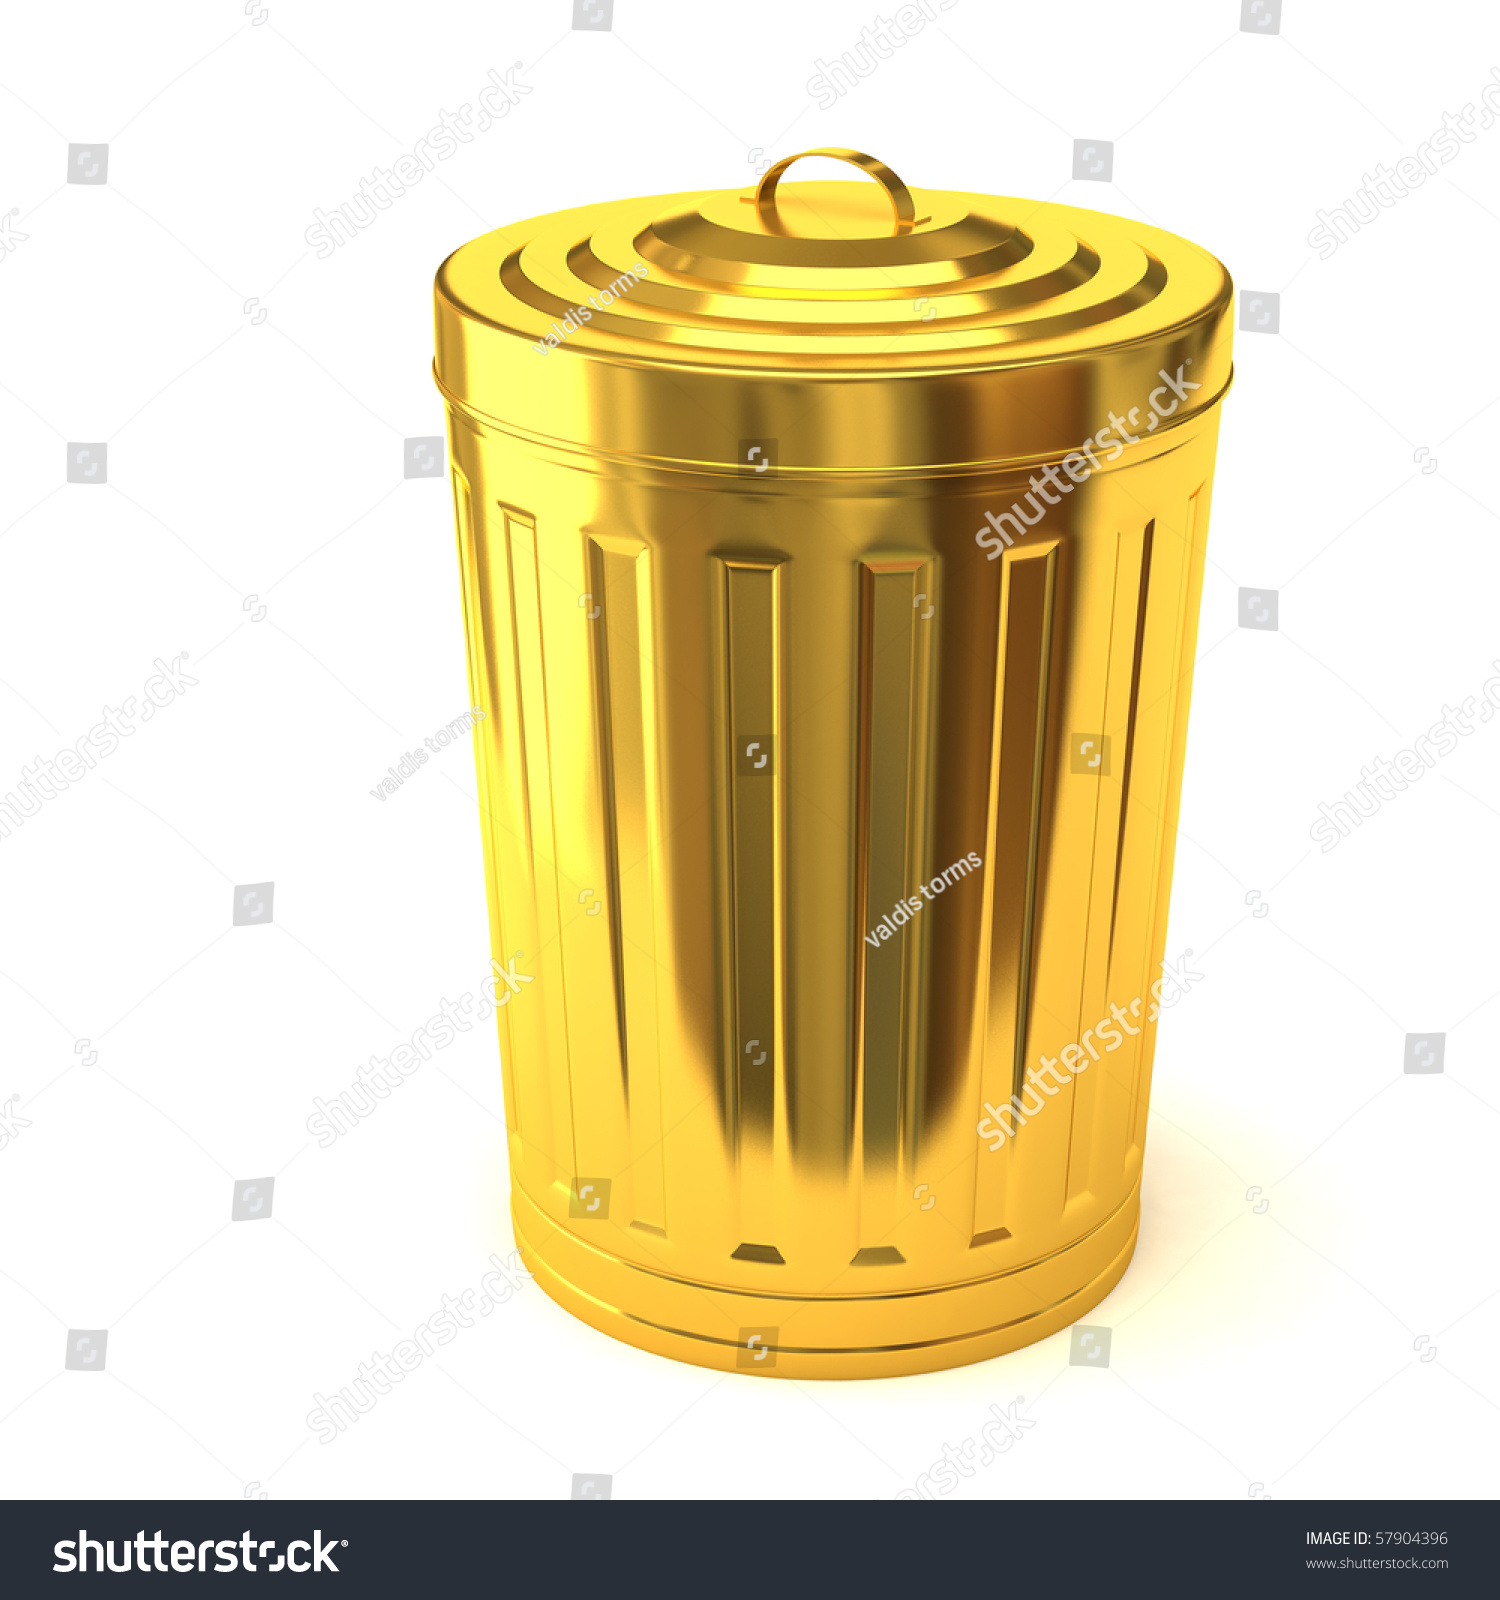 Gold Trash Can Stock Photo 579...